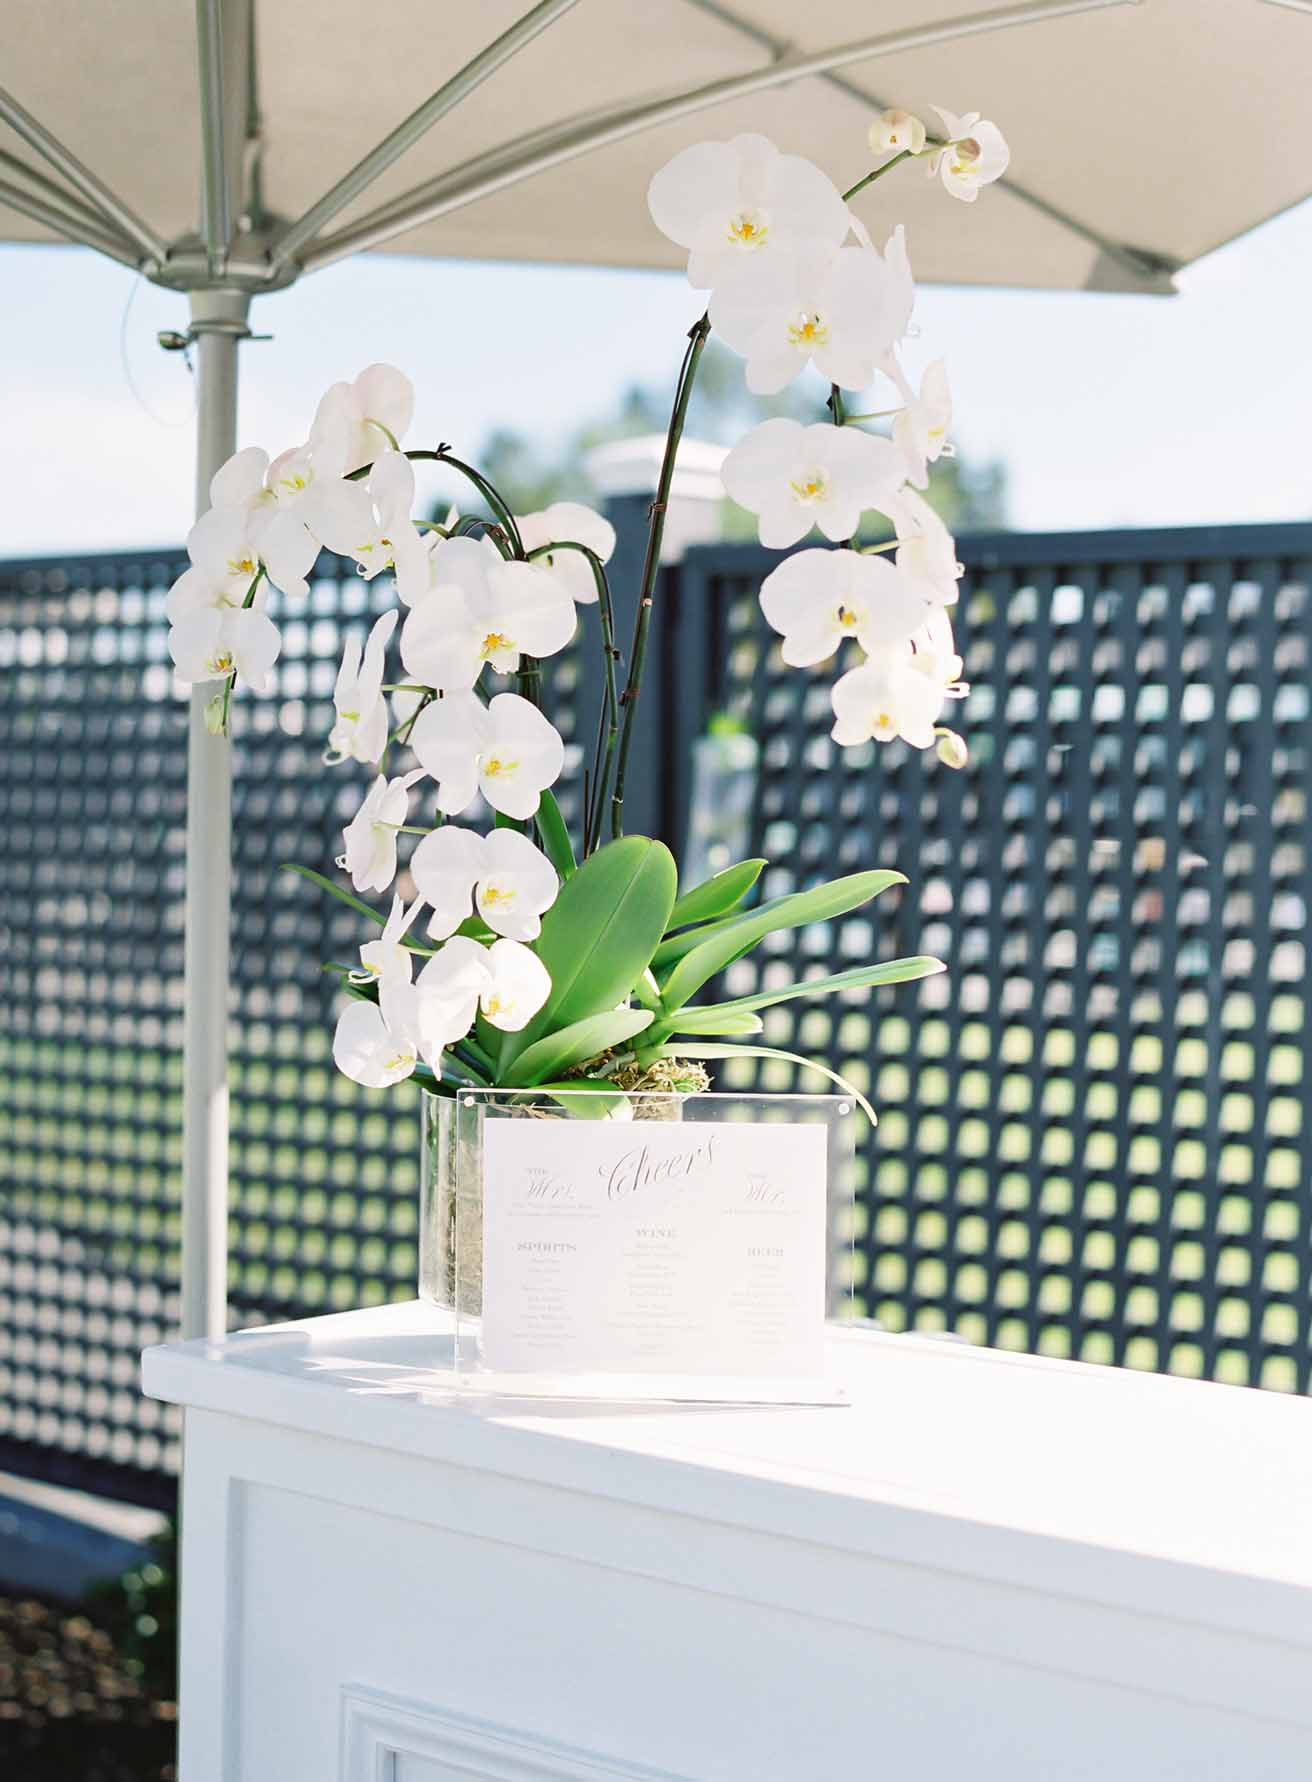 Potted white orchid as cocktail bar decor for wedding